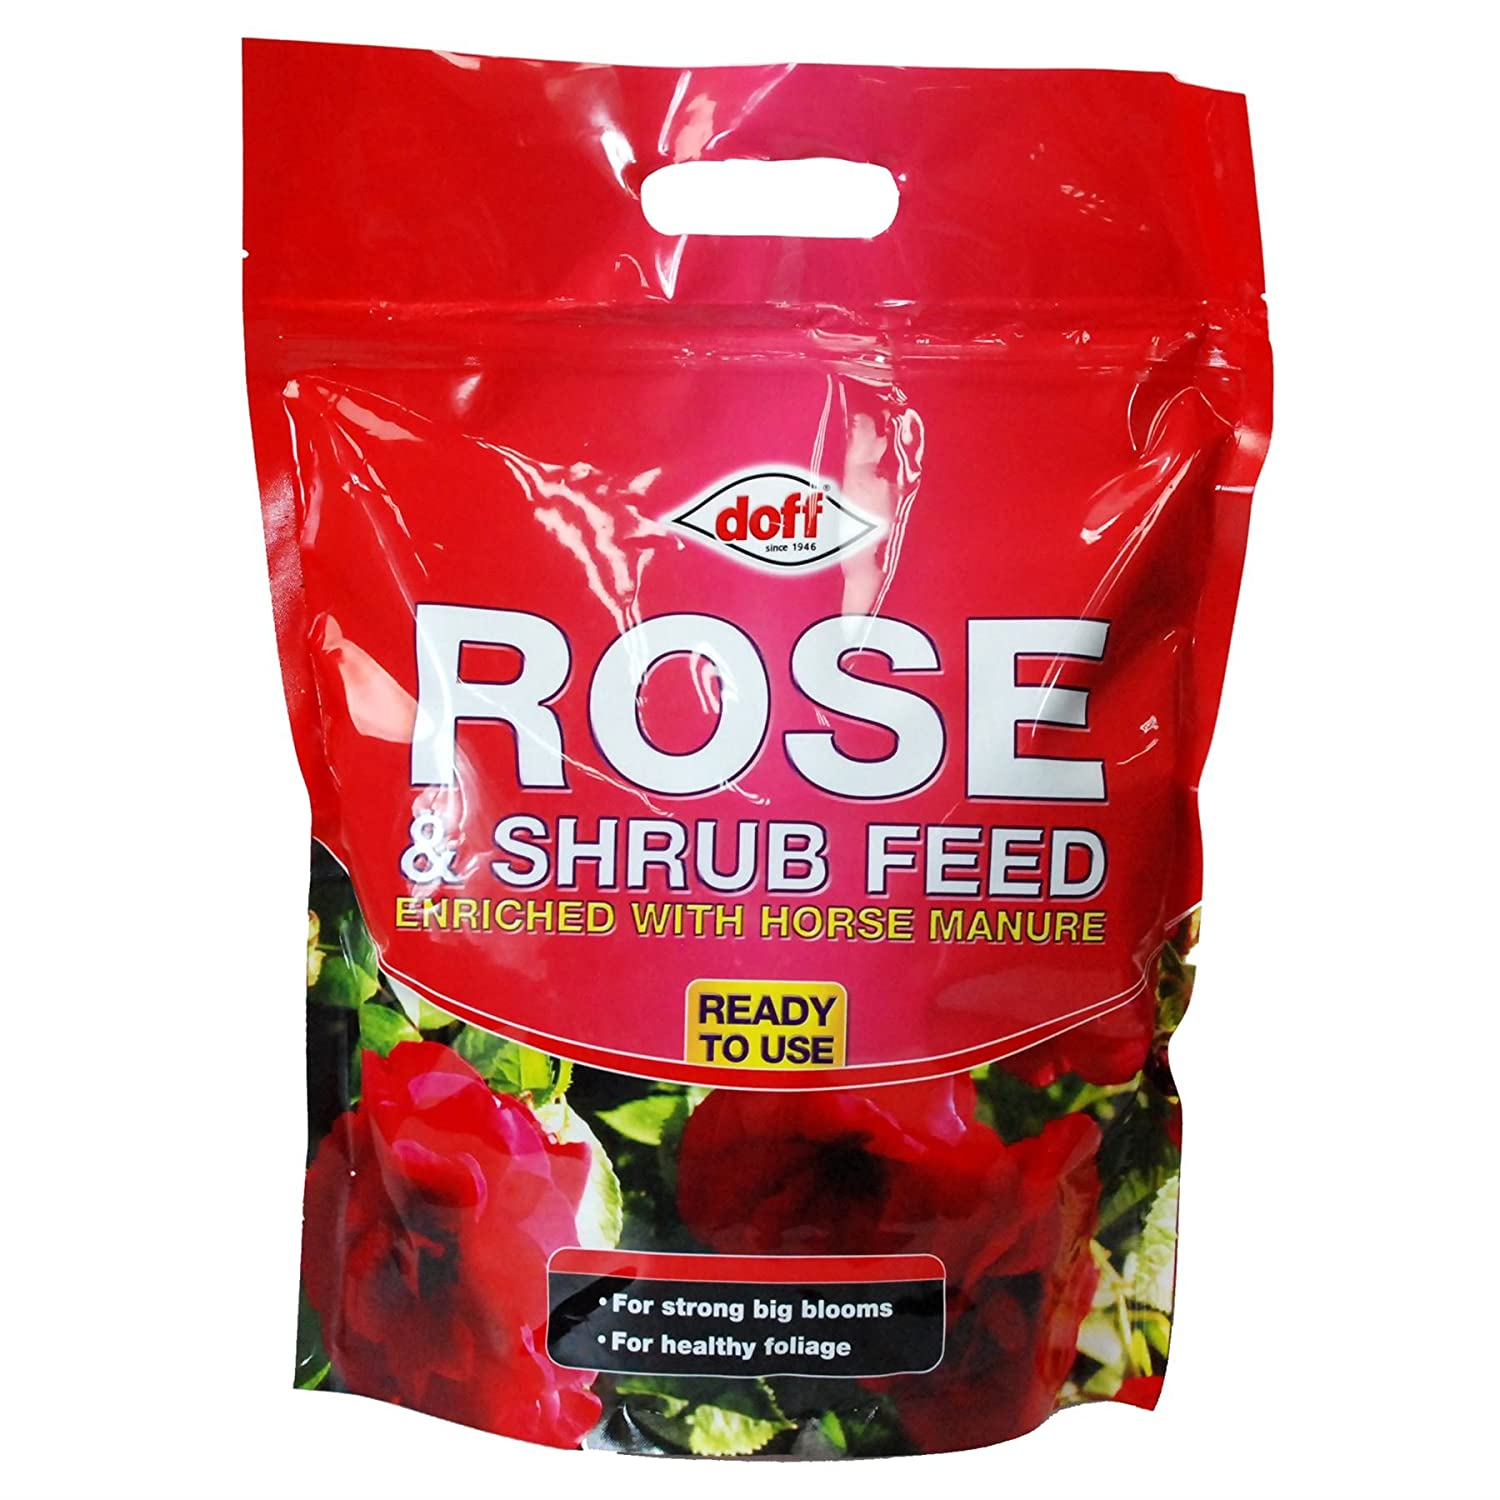 Rose & Shrub Feed enriched with horse manure for strong healthy roses Doff